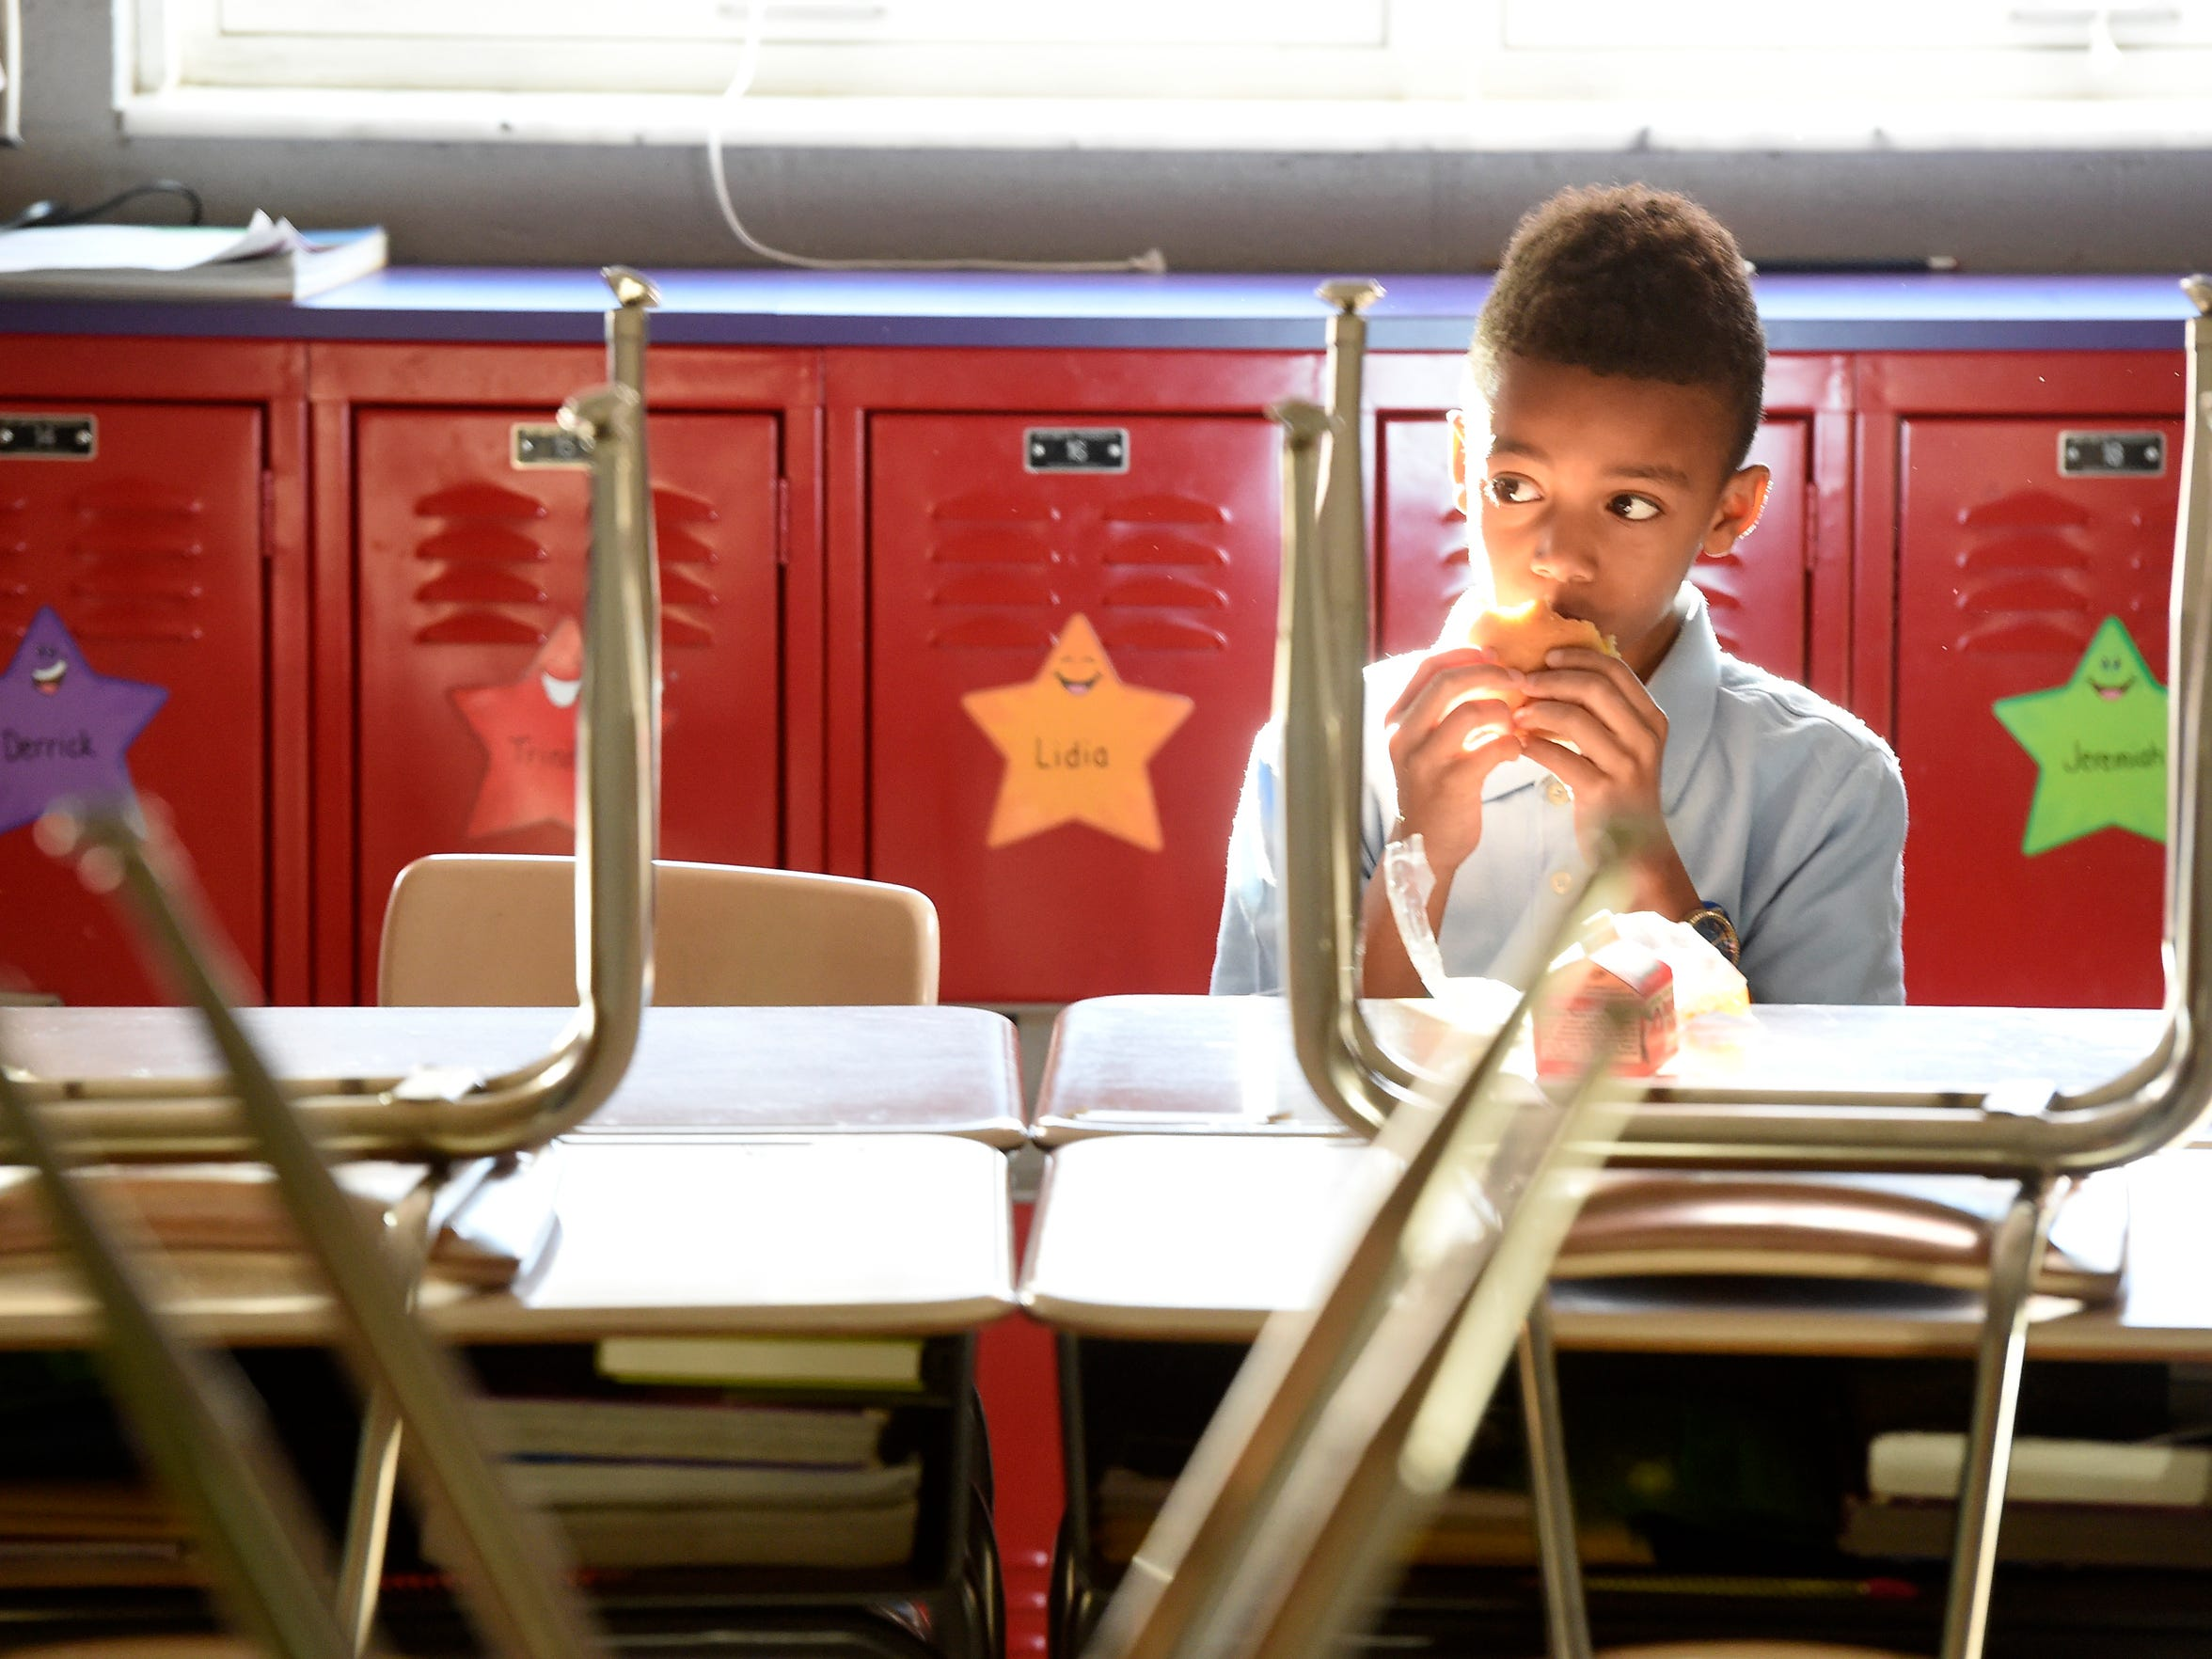 Amqui Elementary School third-grade student Brandon Muhammad eats free breakfast provided by the school at the start of the day in Jennifer Figueredo's classroom Feb. 16, 2017, in Nashville. Figueredo rarely has time to start instruction first thing in the morning. She greets everybody individually, asks them about their night and feeds them breakfast.